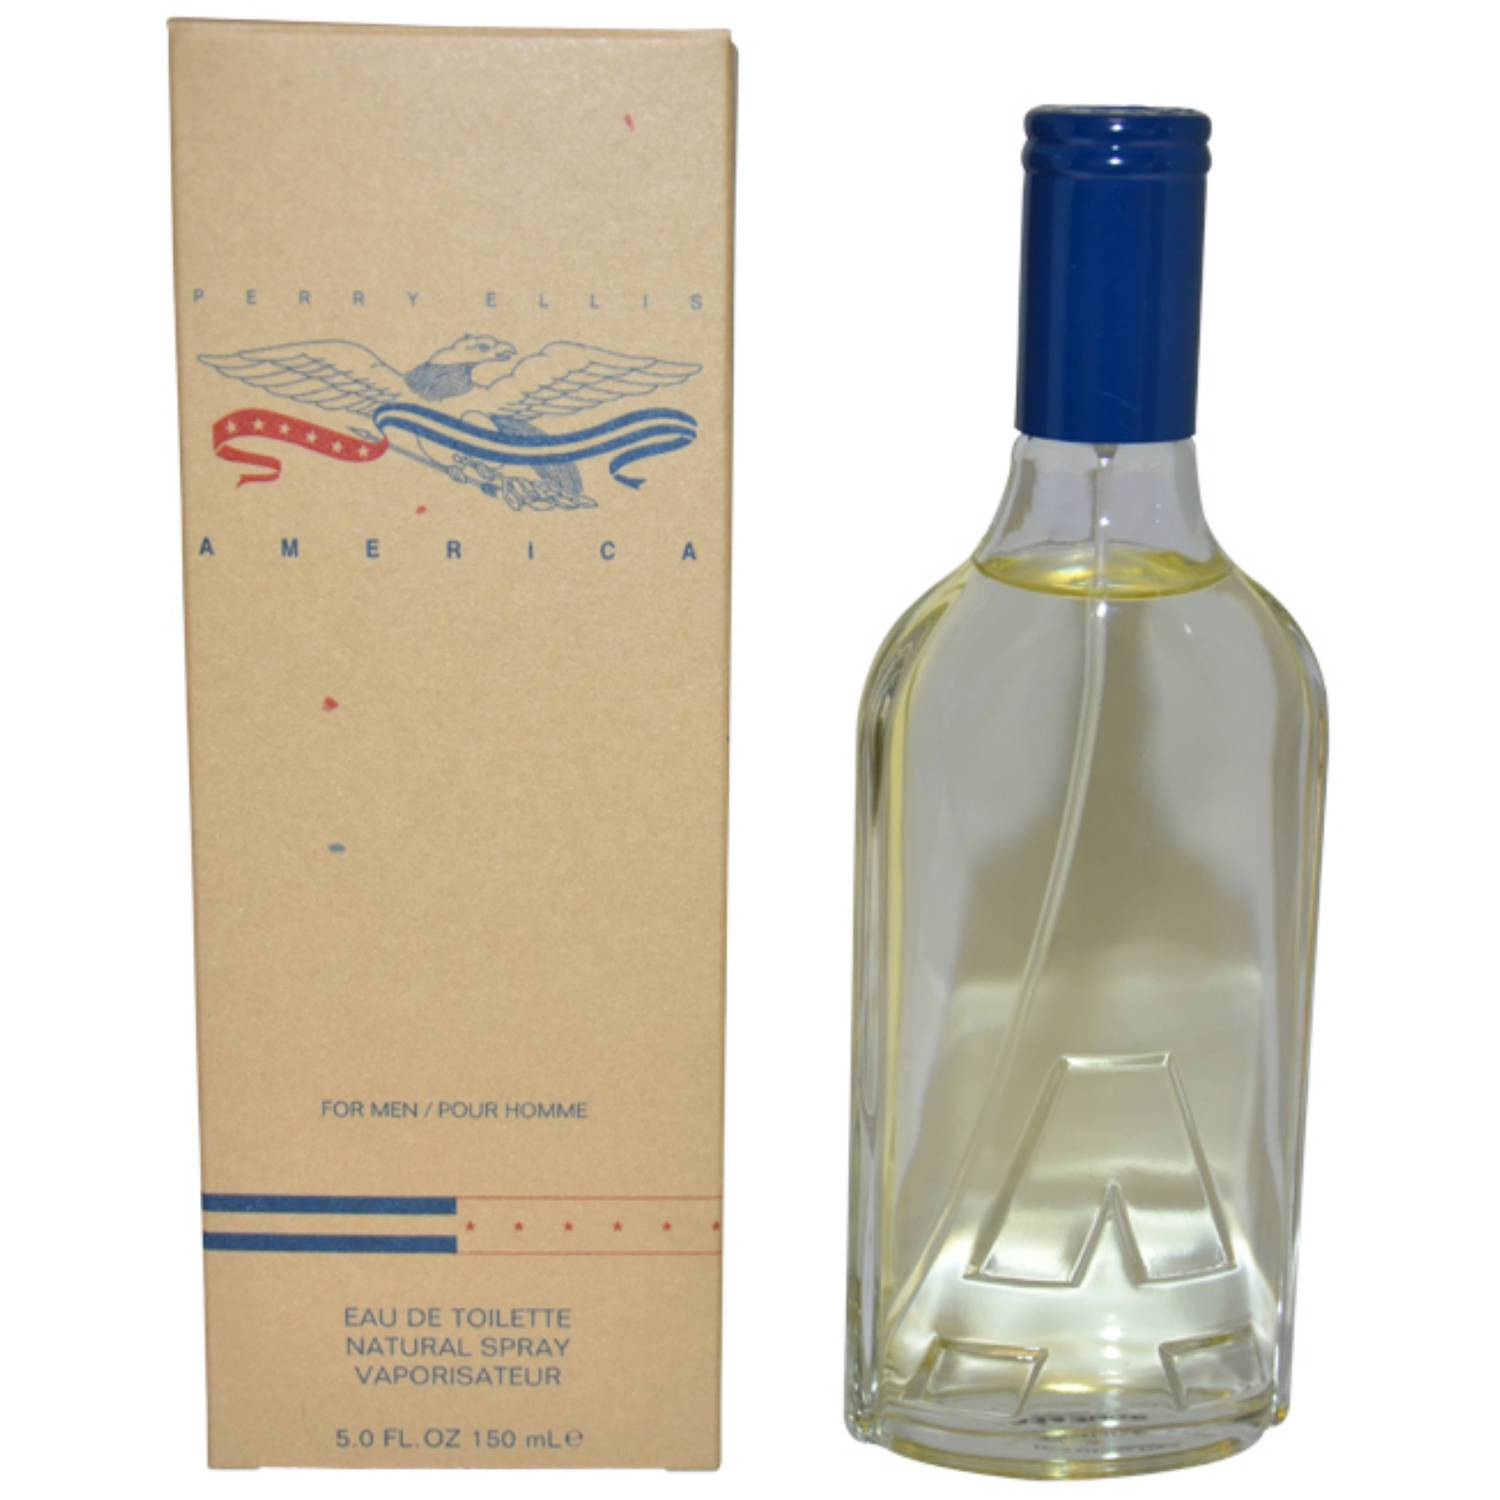 America by Perry Ellis for Men EDT Spray, 5 oz